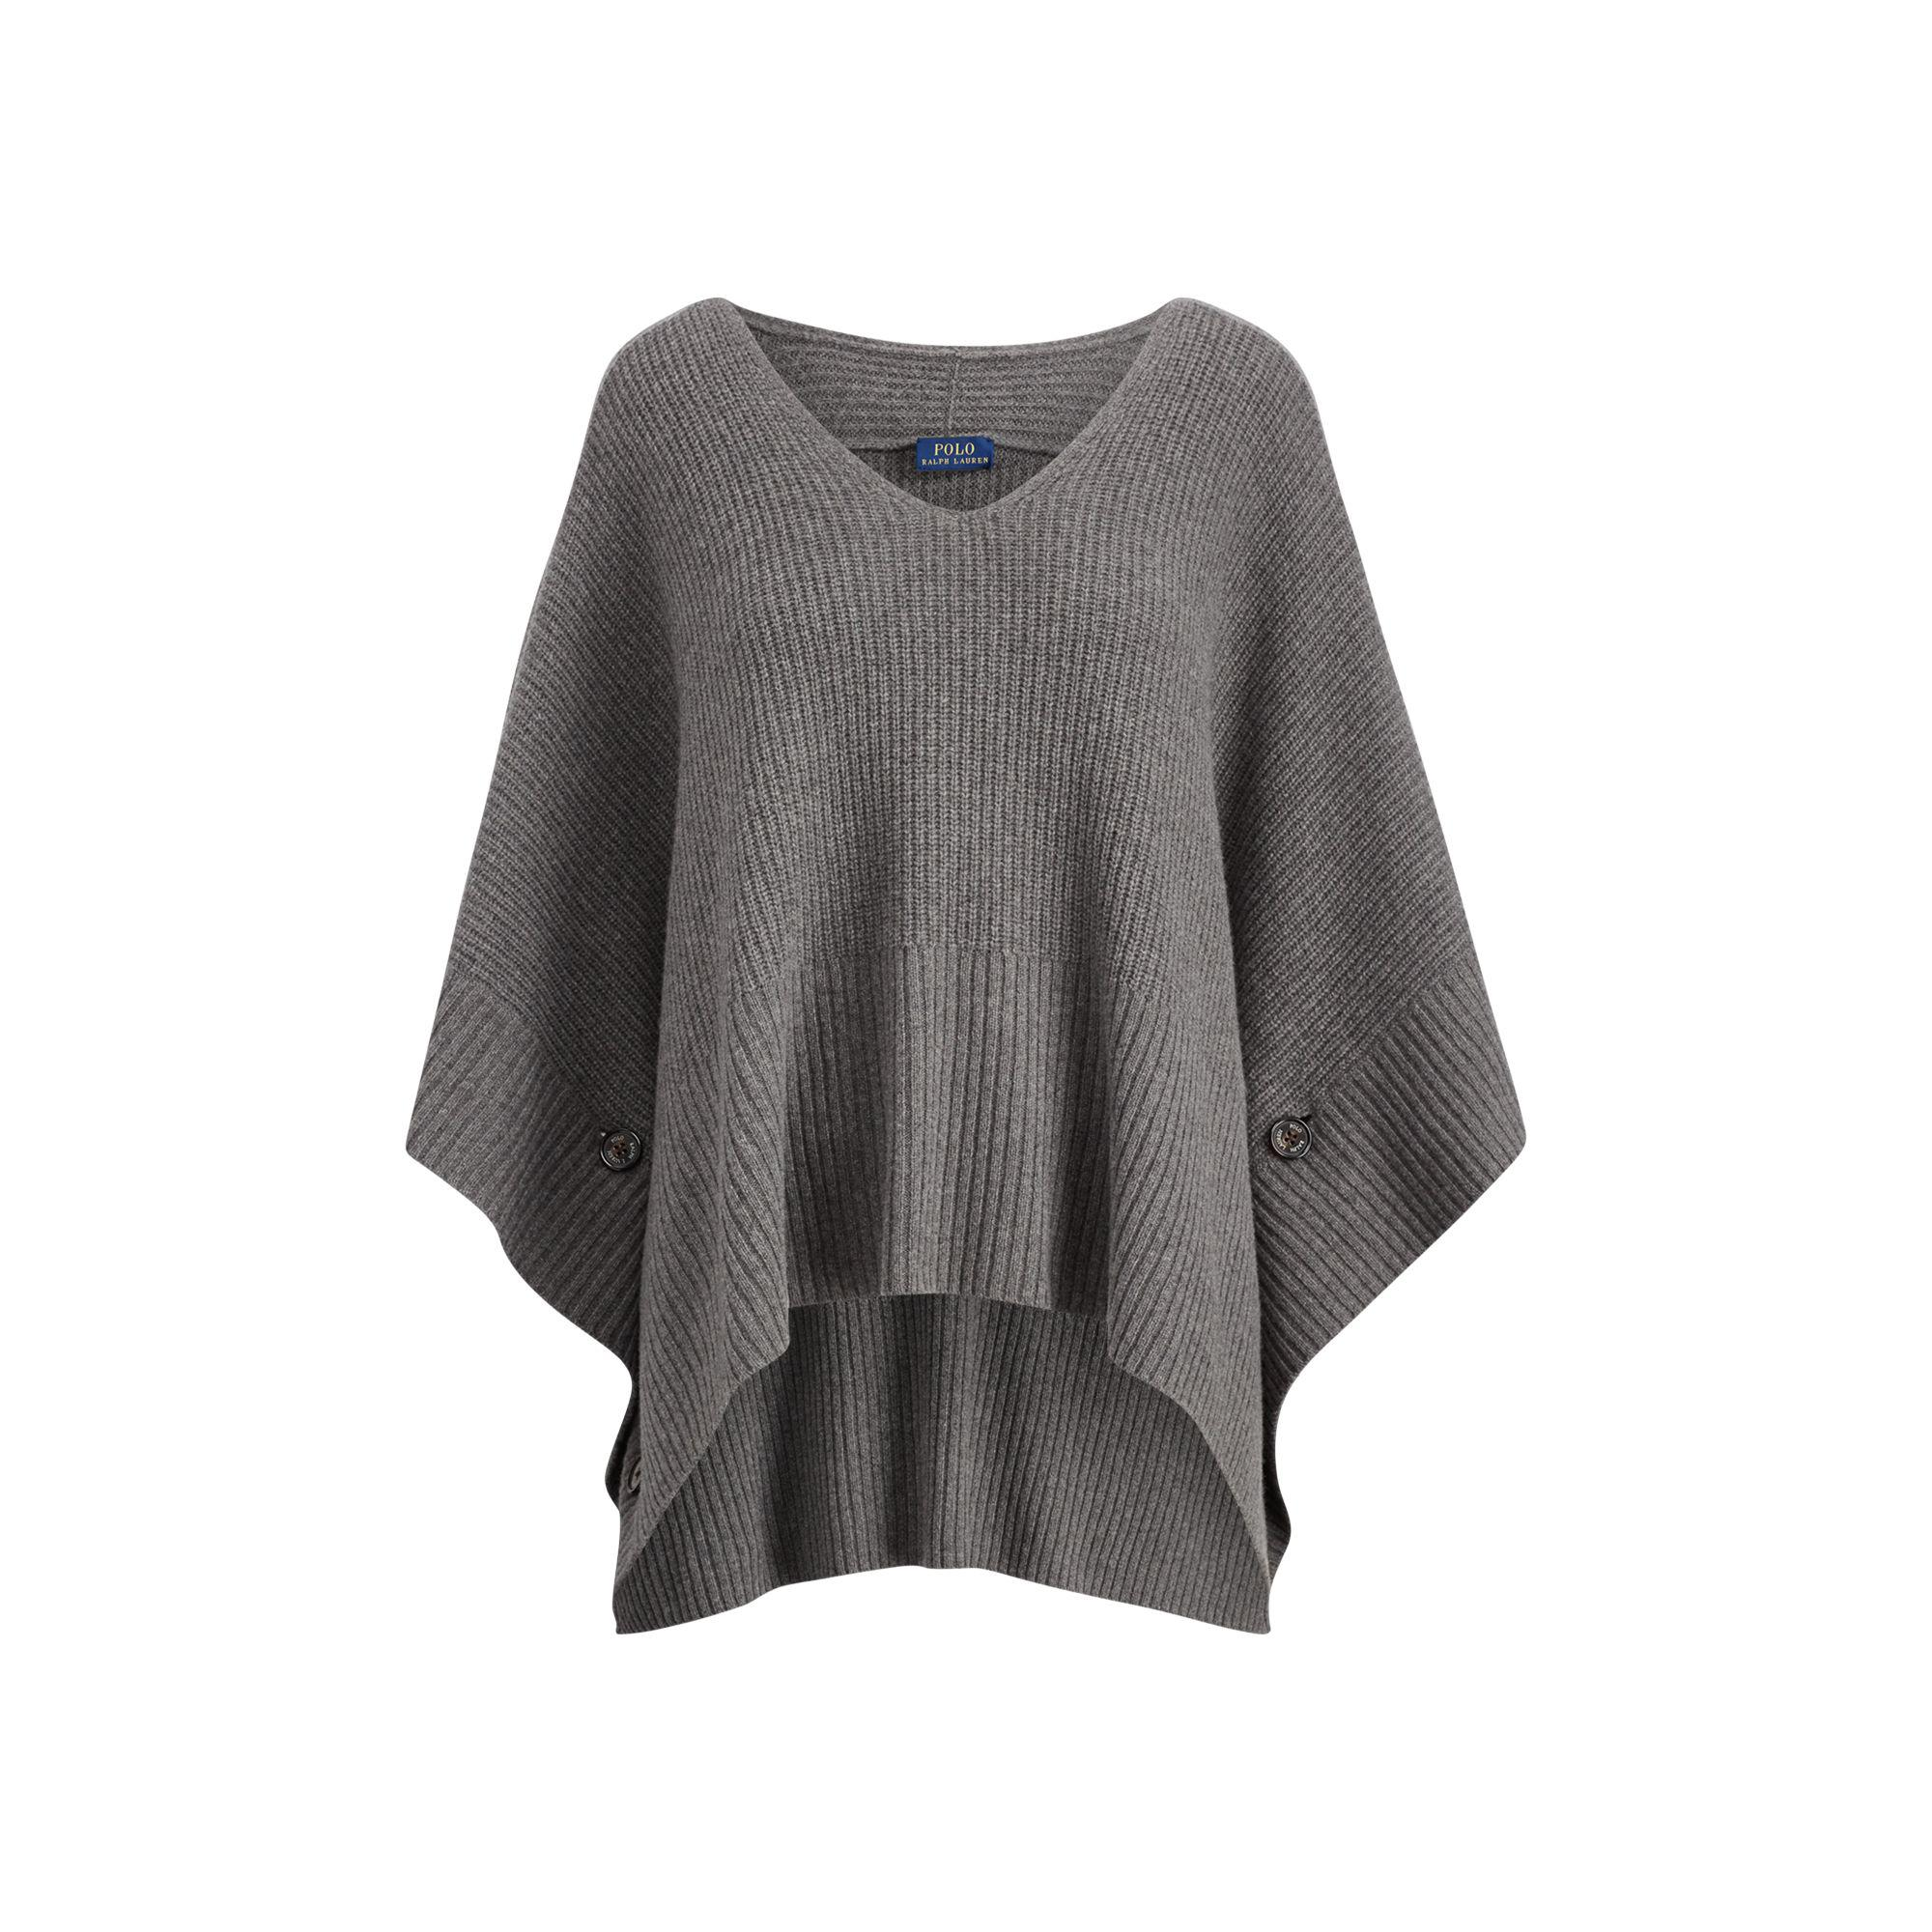 sale usa online for whole family new arrival Polo Ralph Lauren Wool-cashmere Poncho Sweater in Antique ...